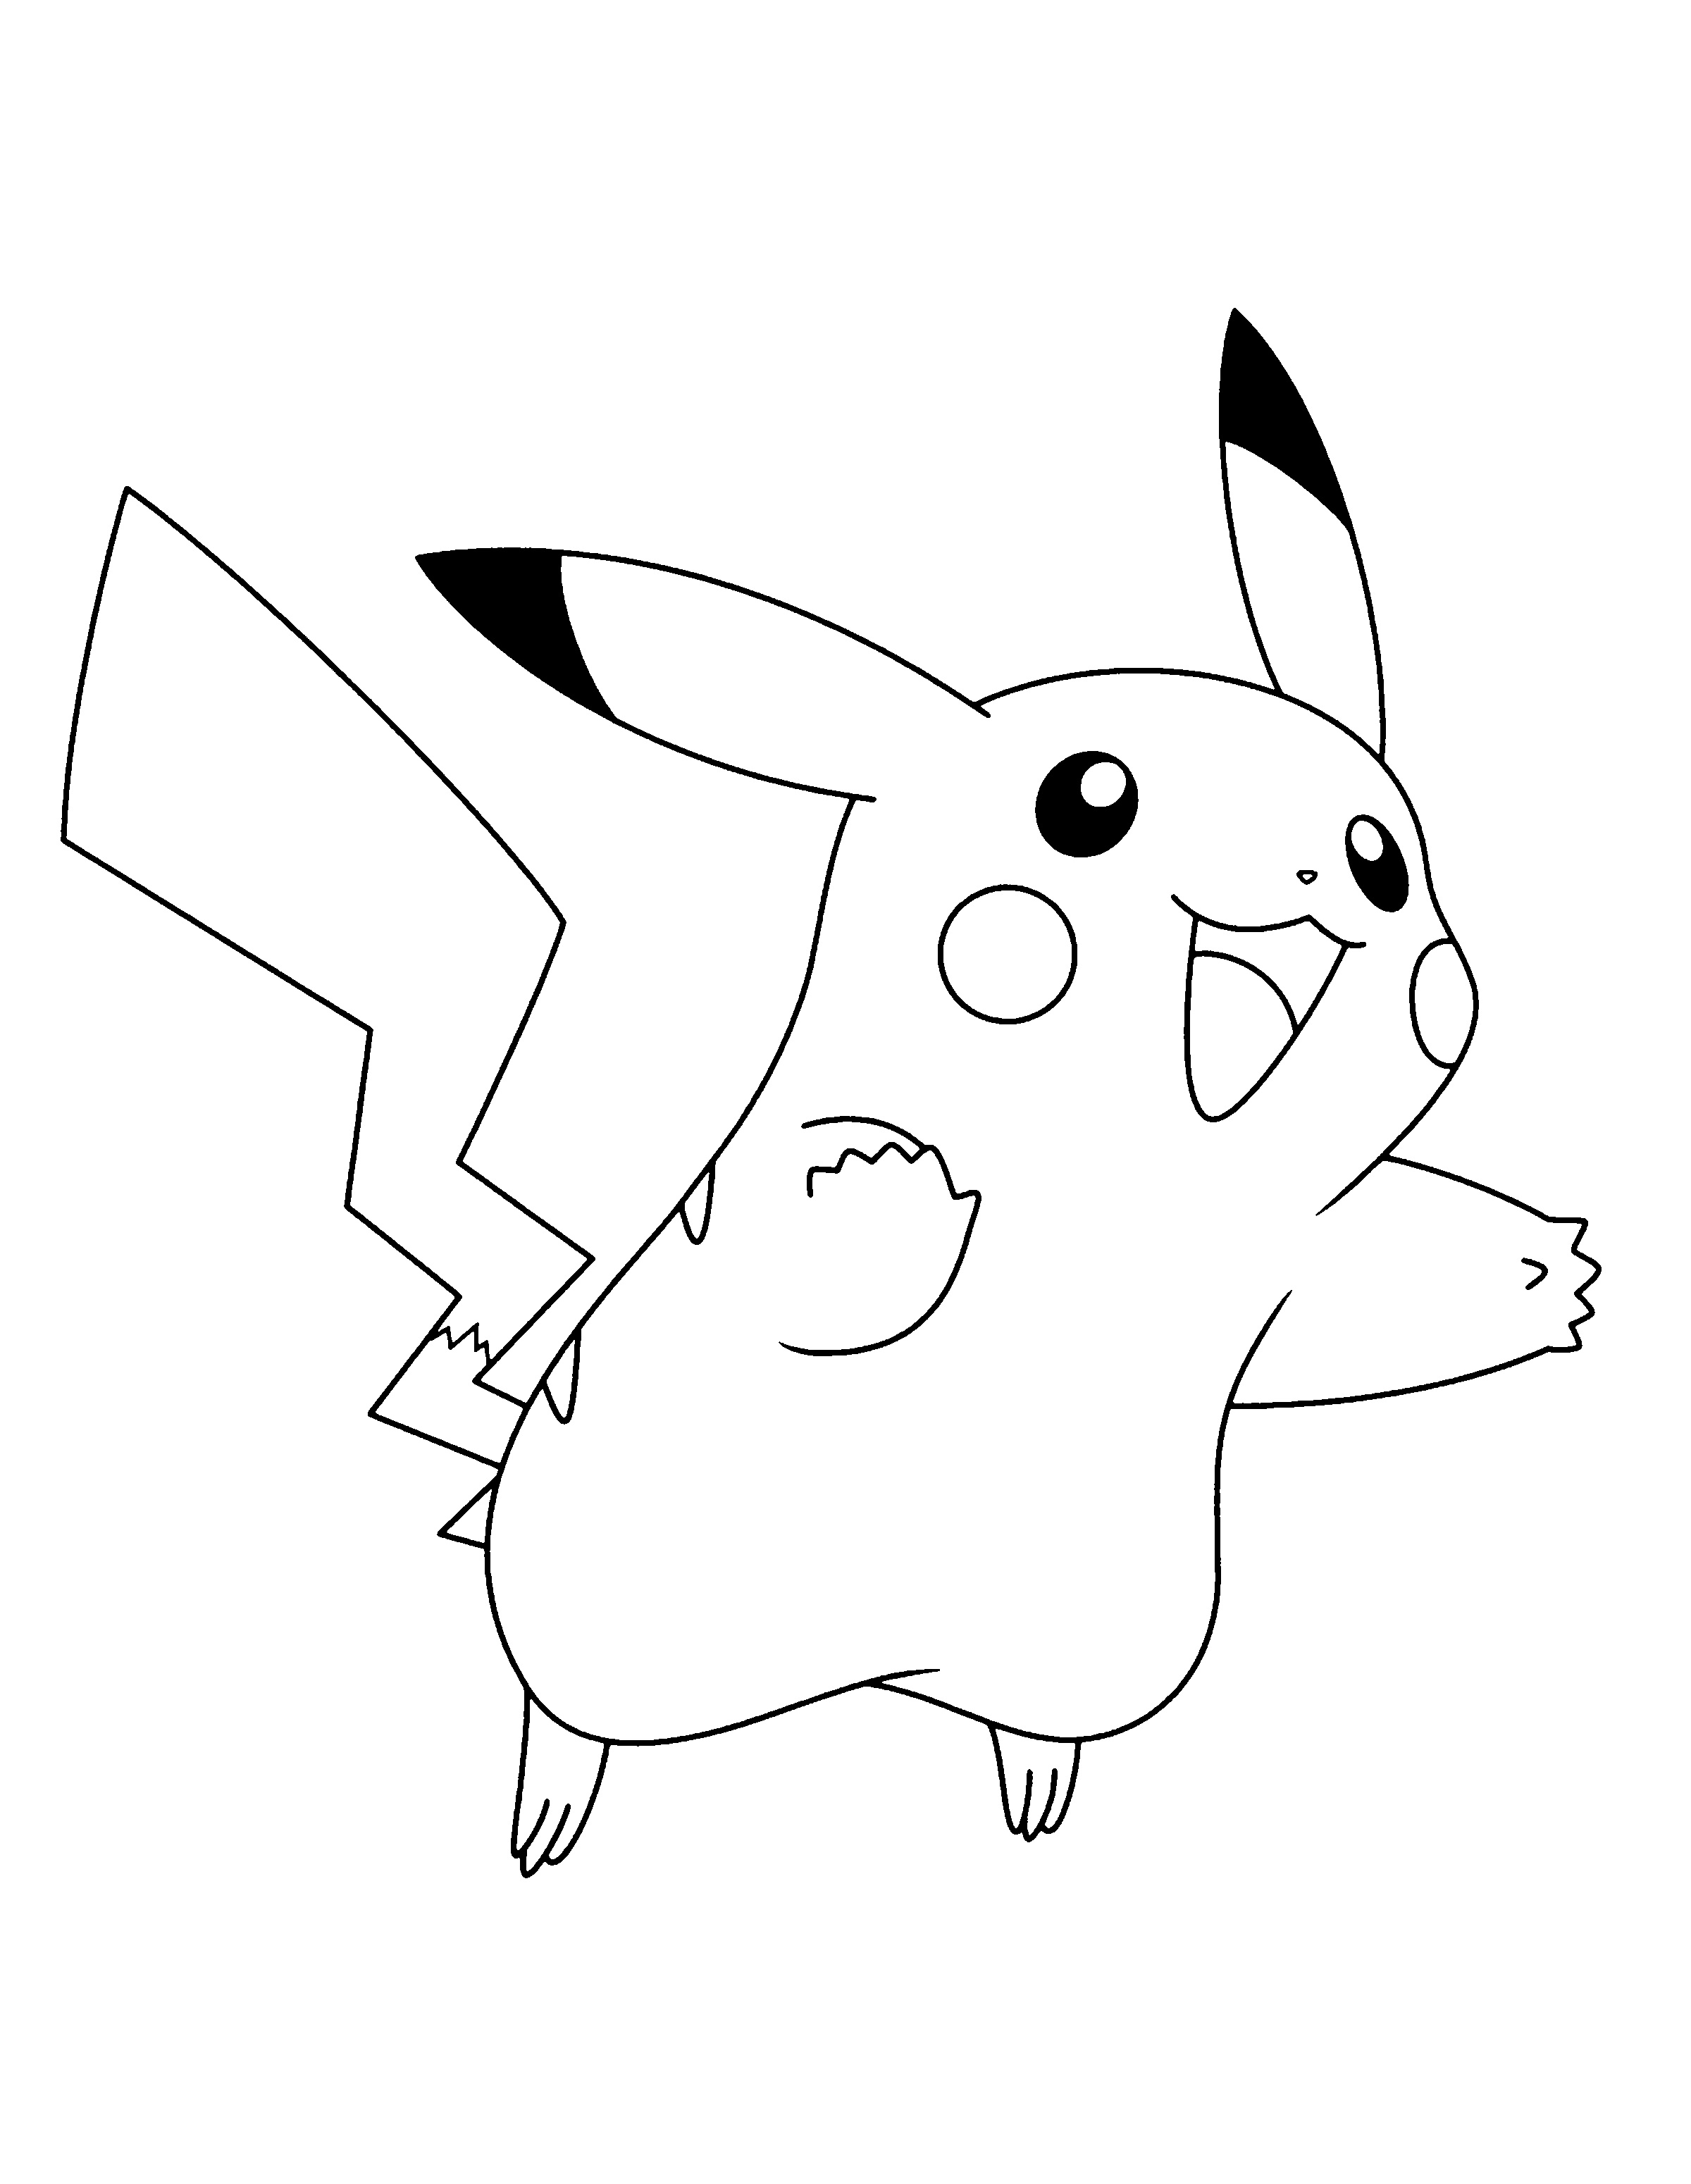 Coloring Pages : Fantastic Pokemong Pages Pikachu Charmander ...